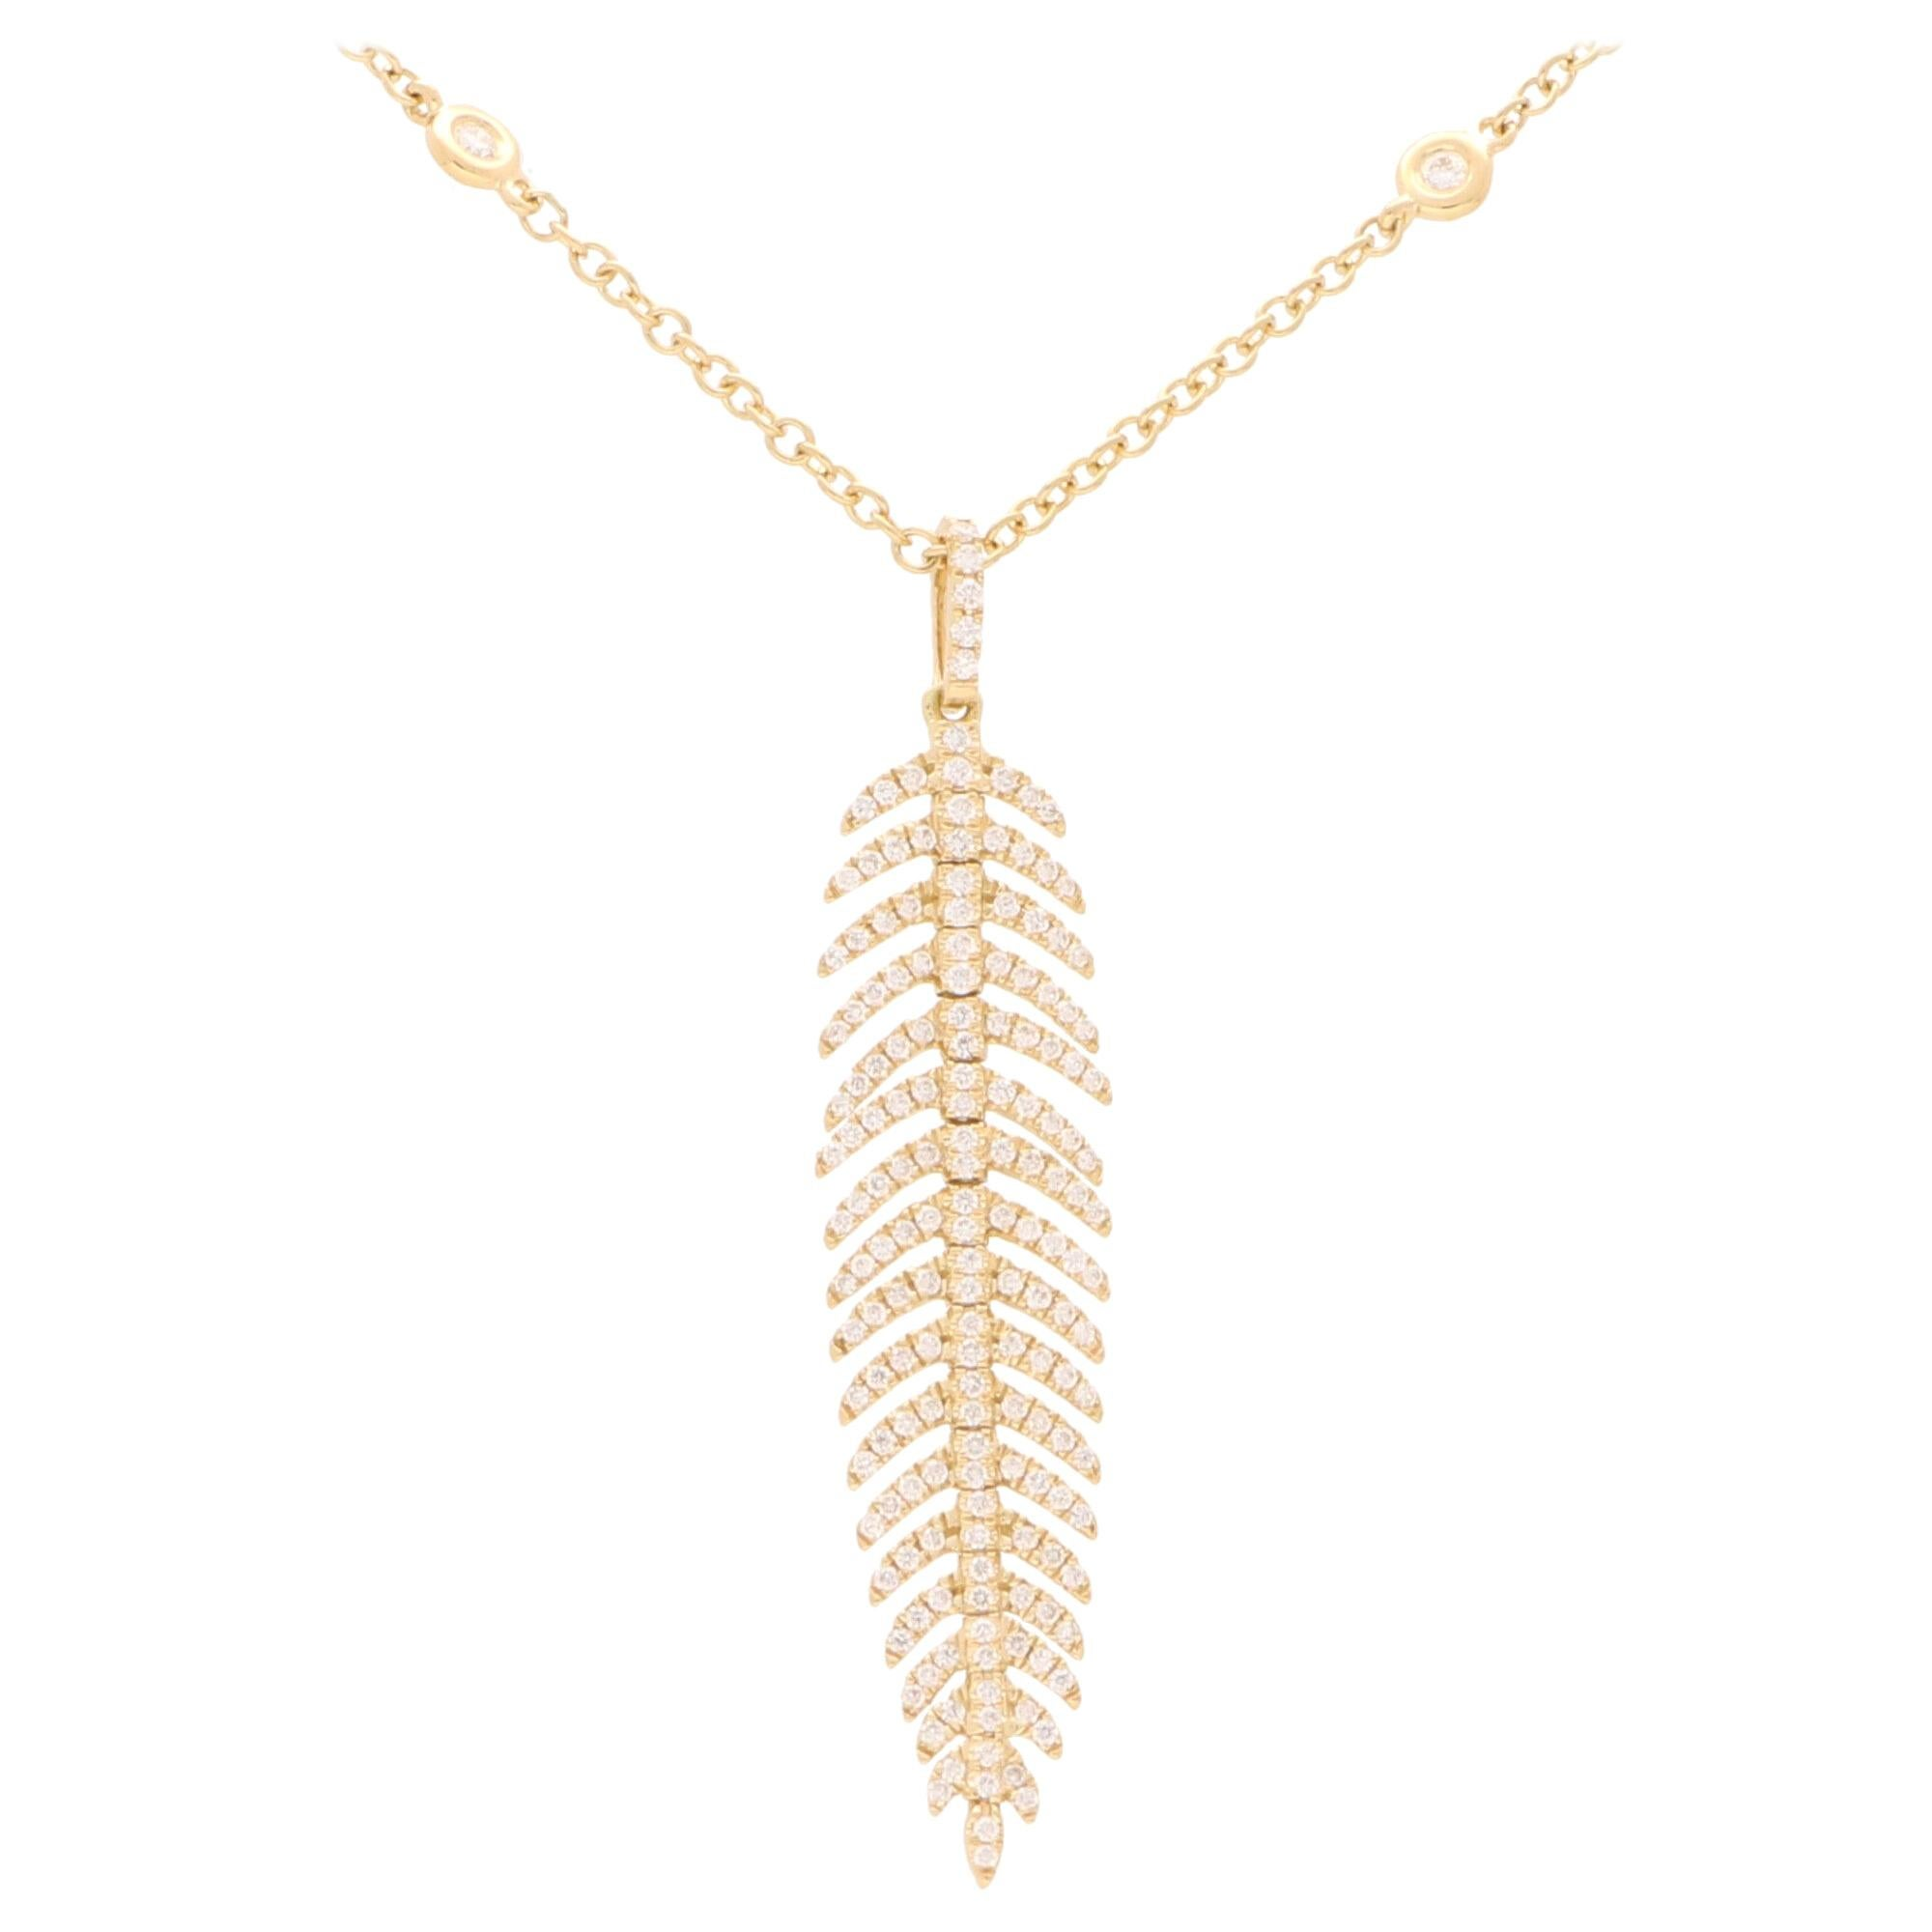 Articulated Diamond Feather Necklace in 18 Karat Yellow Gold